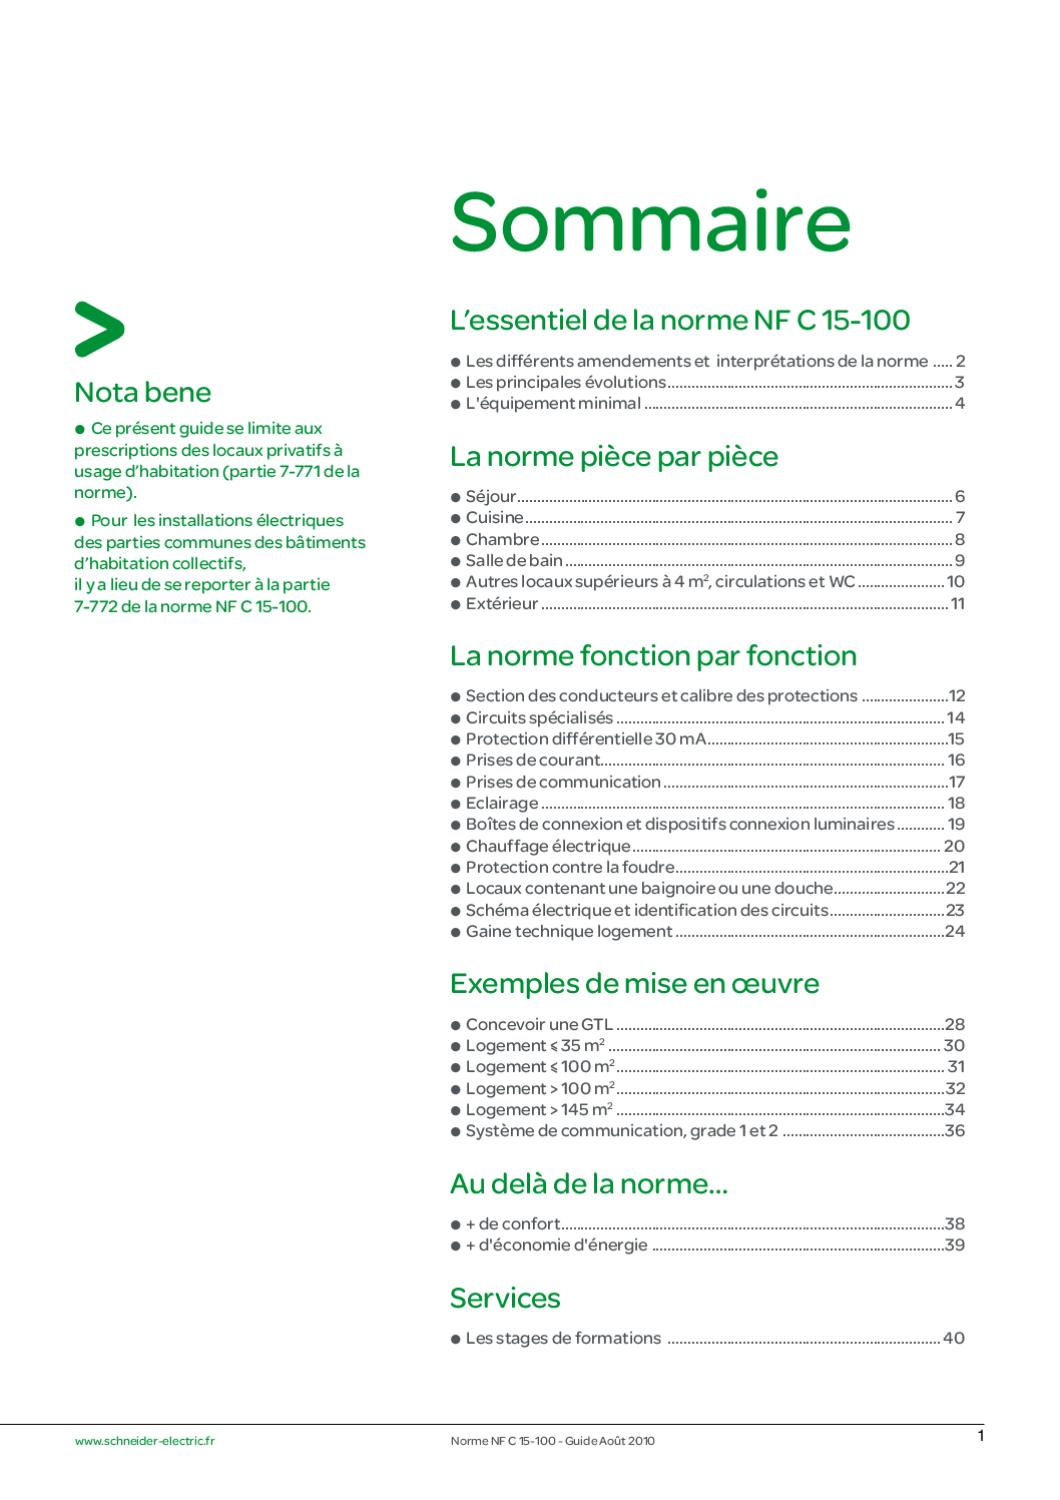 guide nfc 15 100 by schneider electric issuu. Black Bedroom Furniture Sets. Home Design Ideas